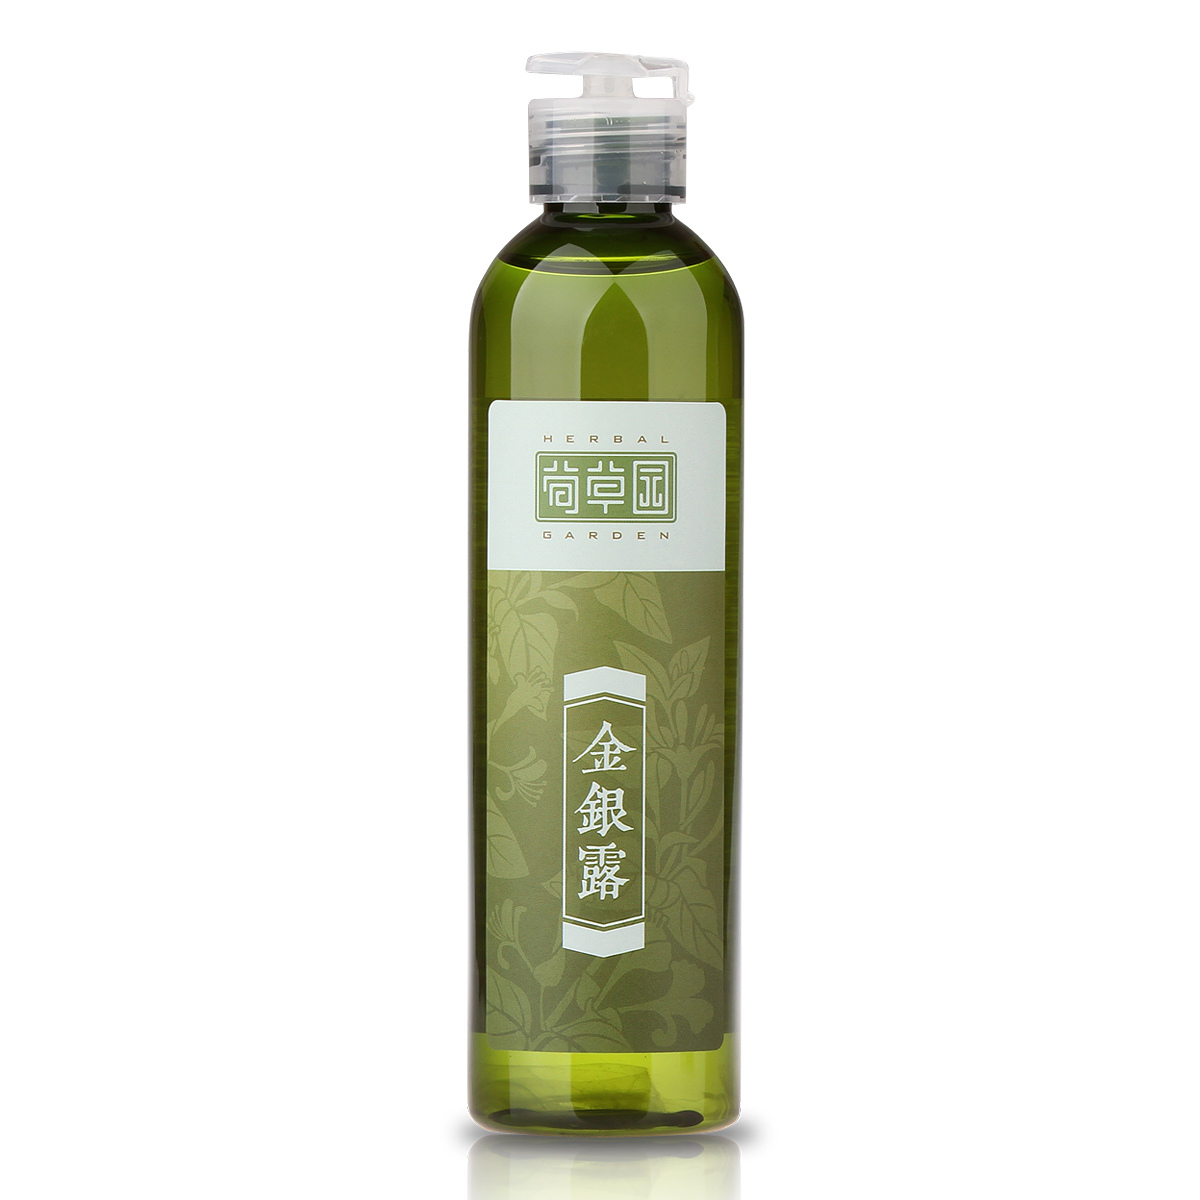 Лосьон/лосьон The Xun Grass Park  250ml